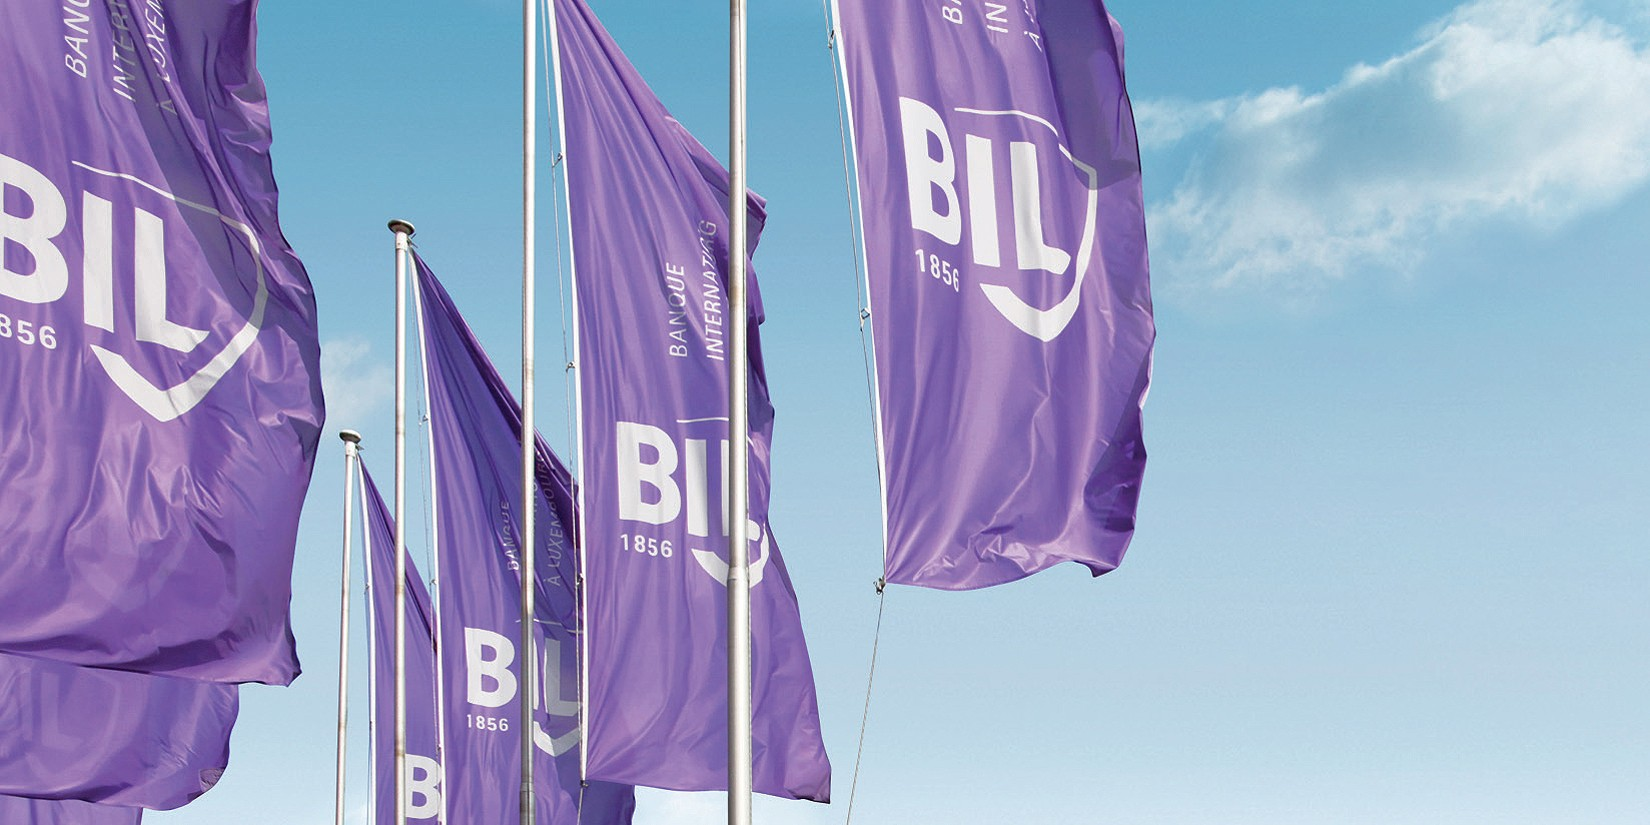 Read on to find out about the latest business headlines BIL